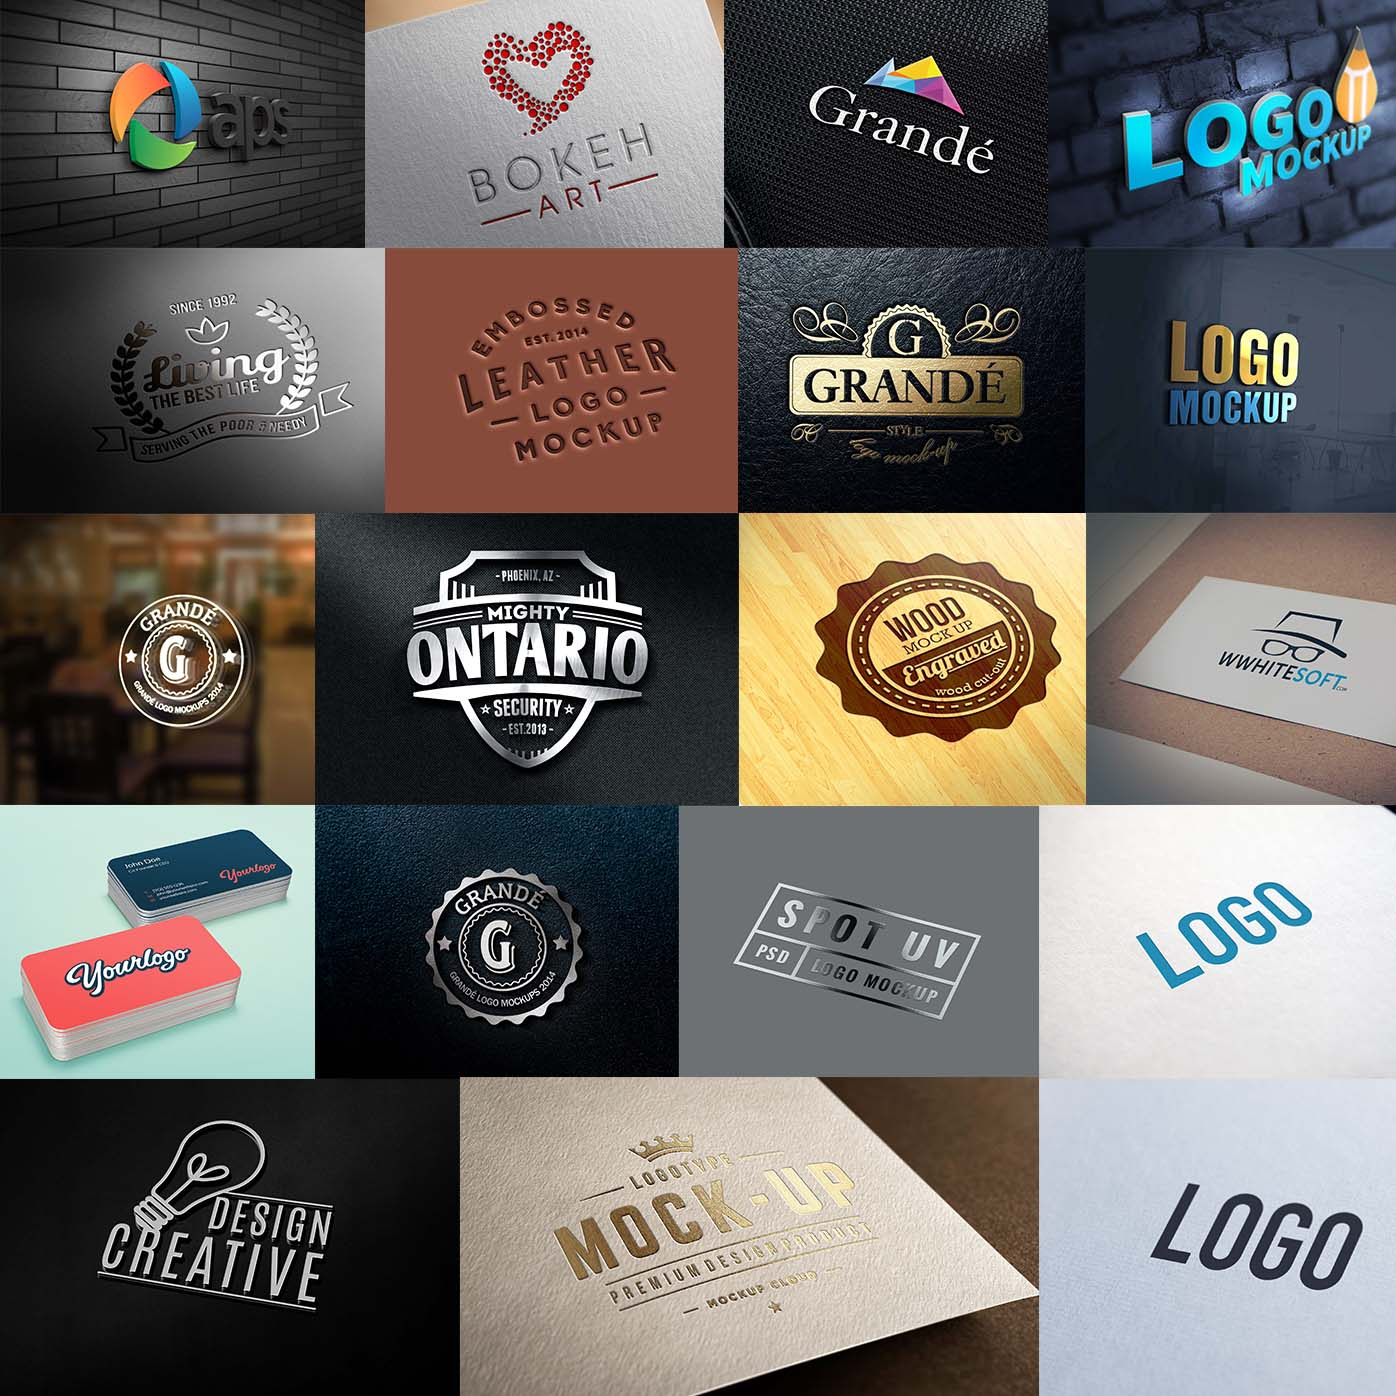 do 20 Photorealistic 3d logo mockups Quickly